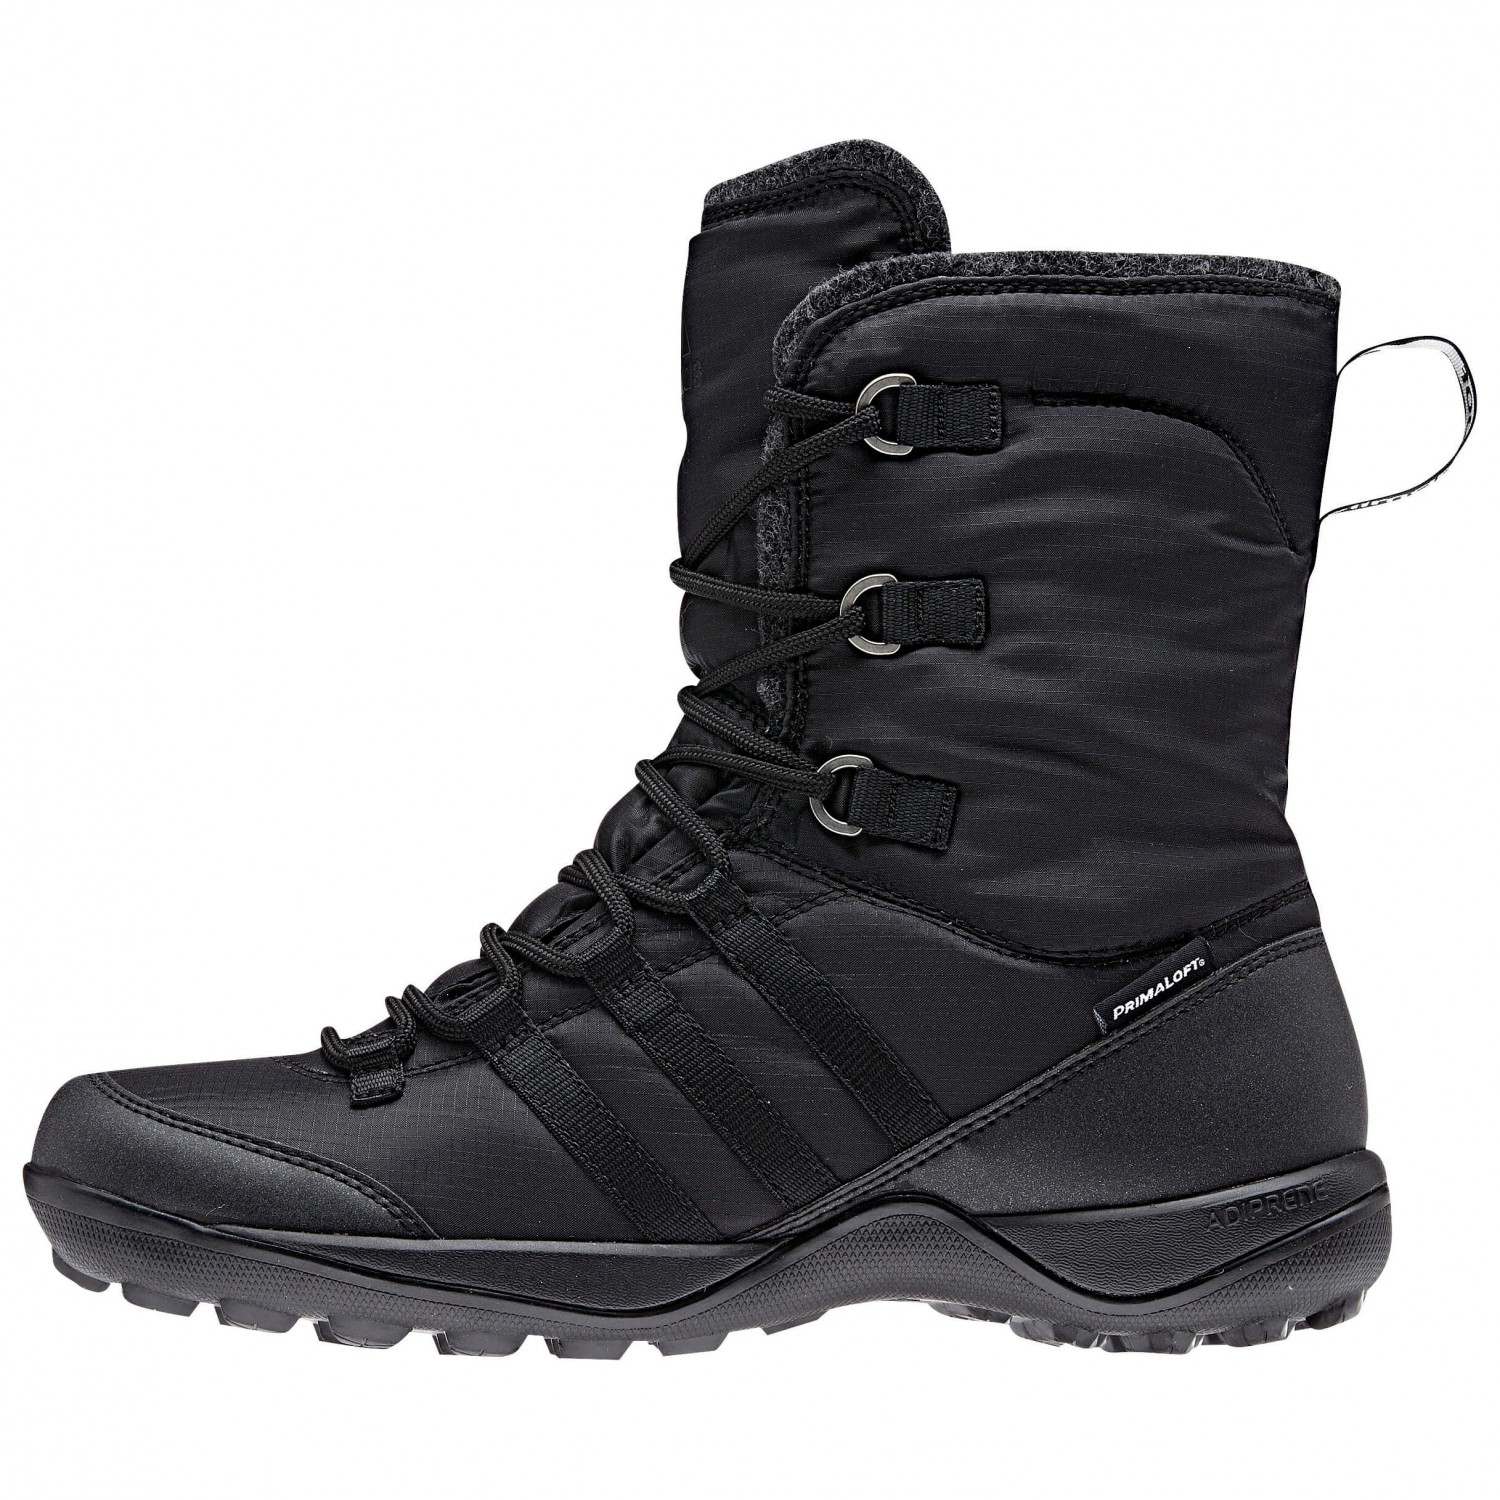 Adidas CW Libria Pearl CP Winter boots Women's | Buy